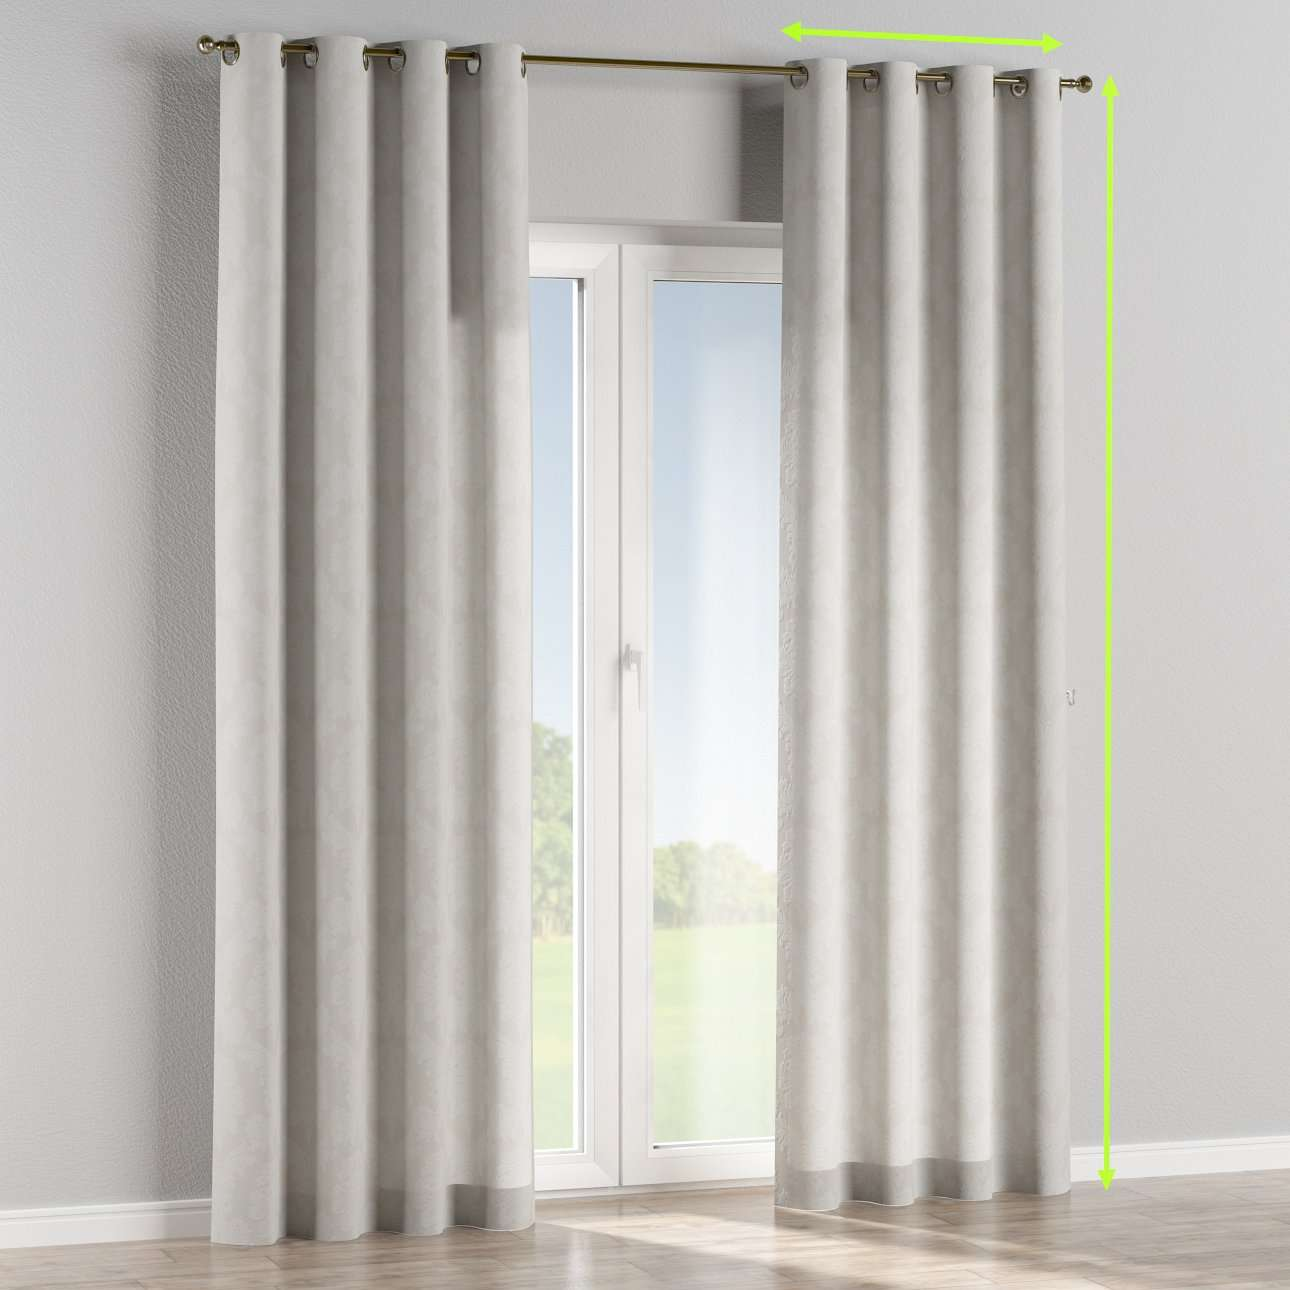 Eyelet lined curtains in collection Damasco, fabric: 613-81